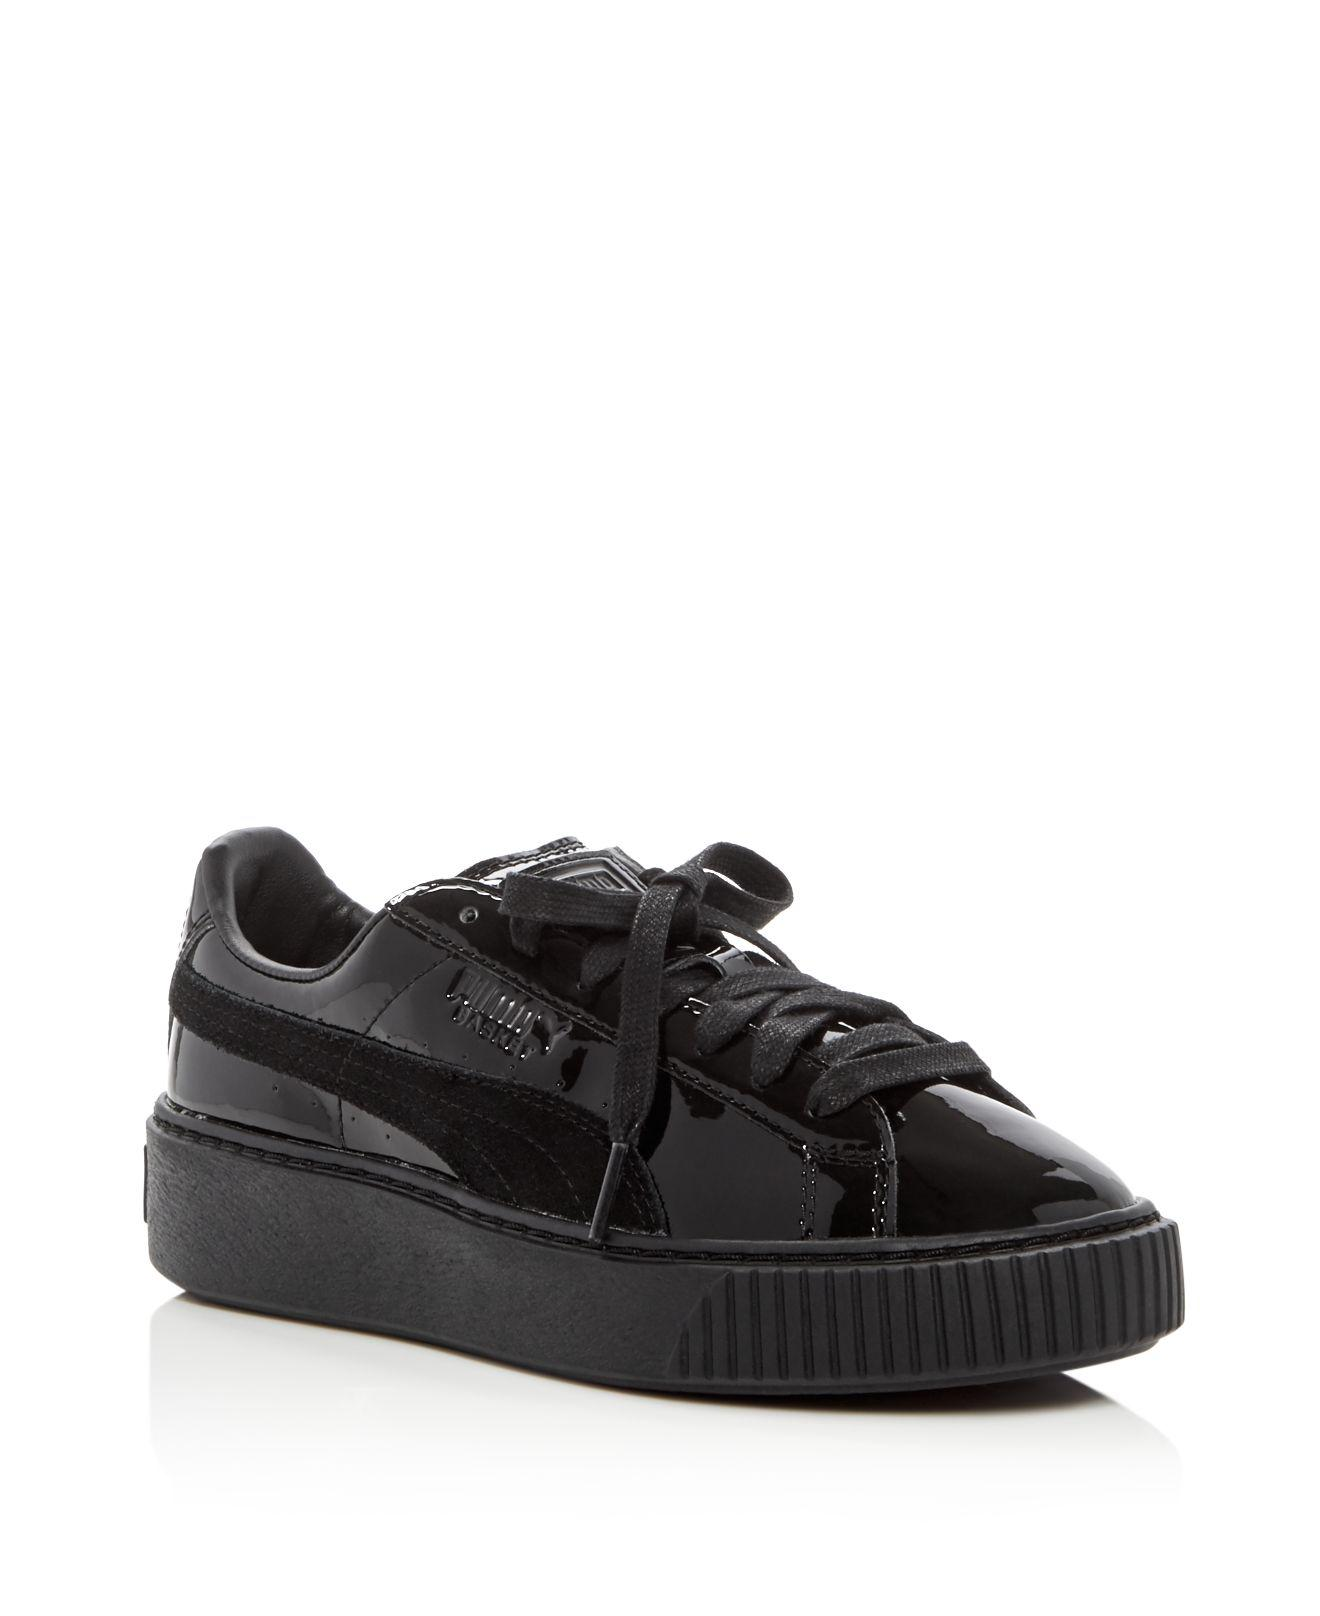 b367d4e6df6fb3 Lyst - Puma Basket Patent Lace Up Platform Sneakers in Black